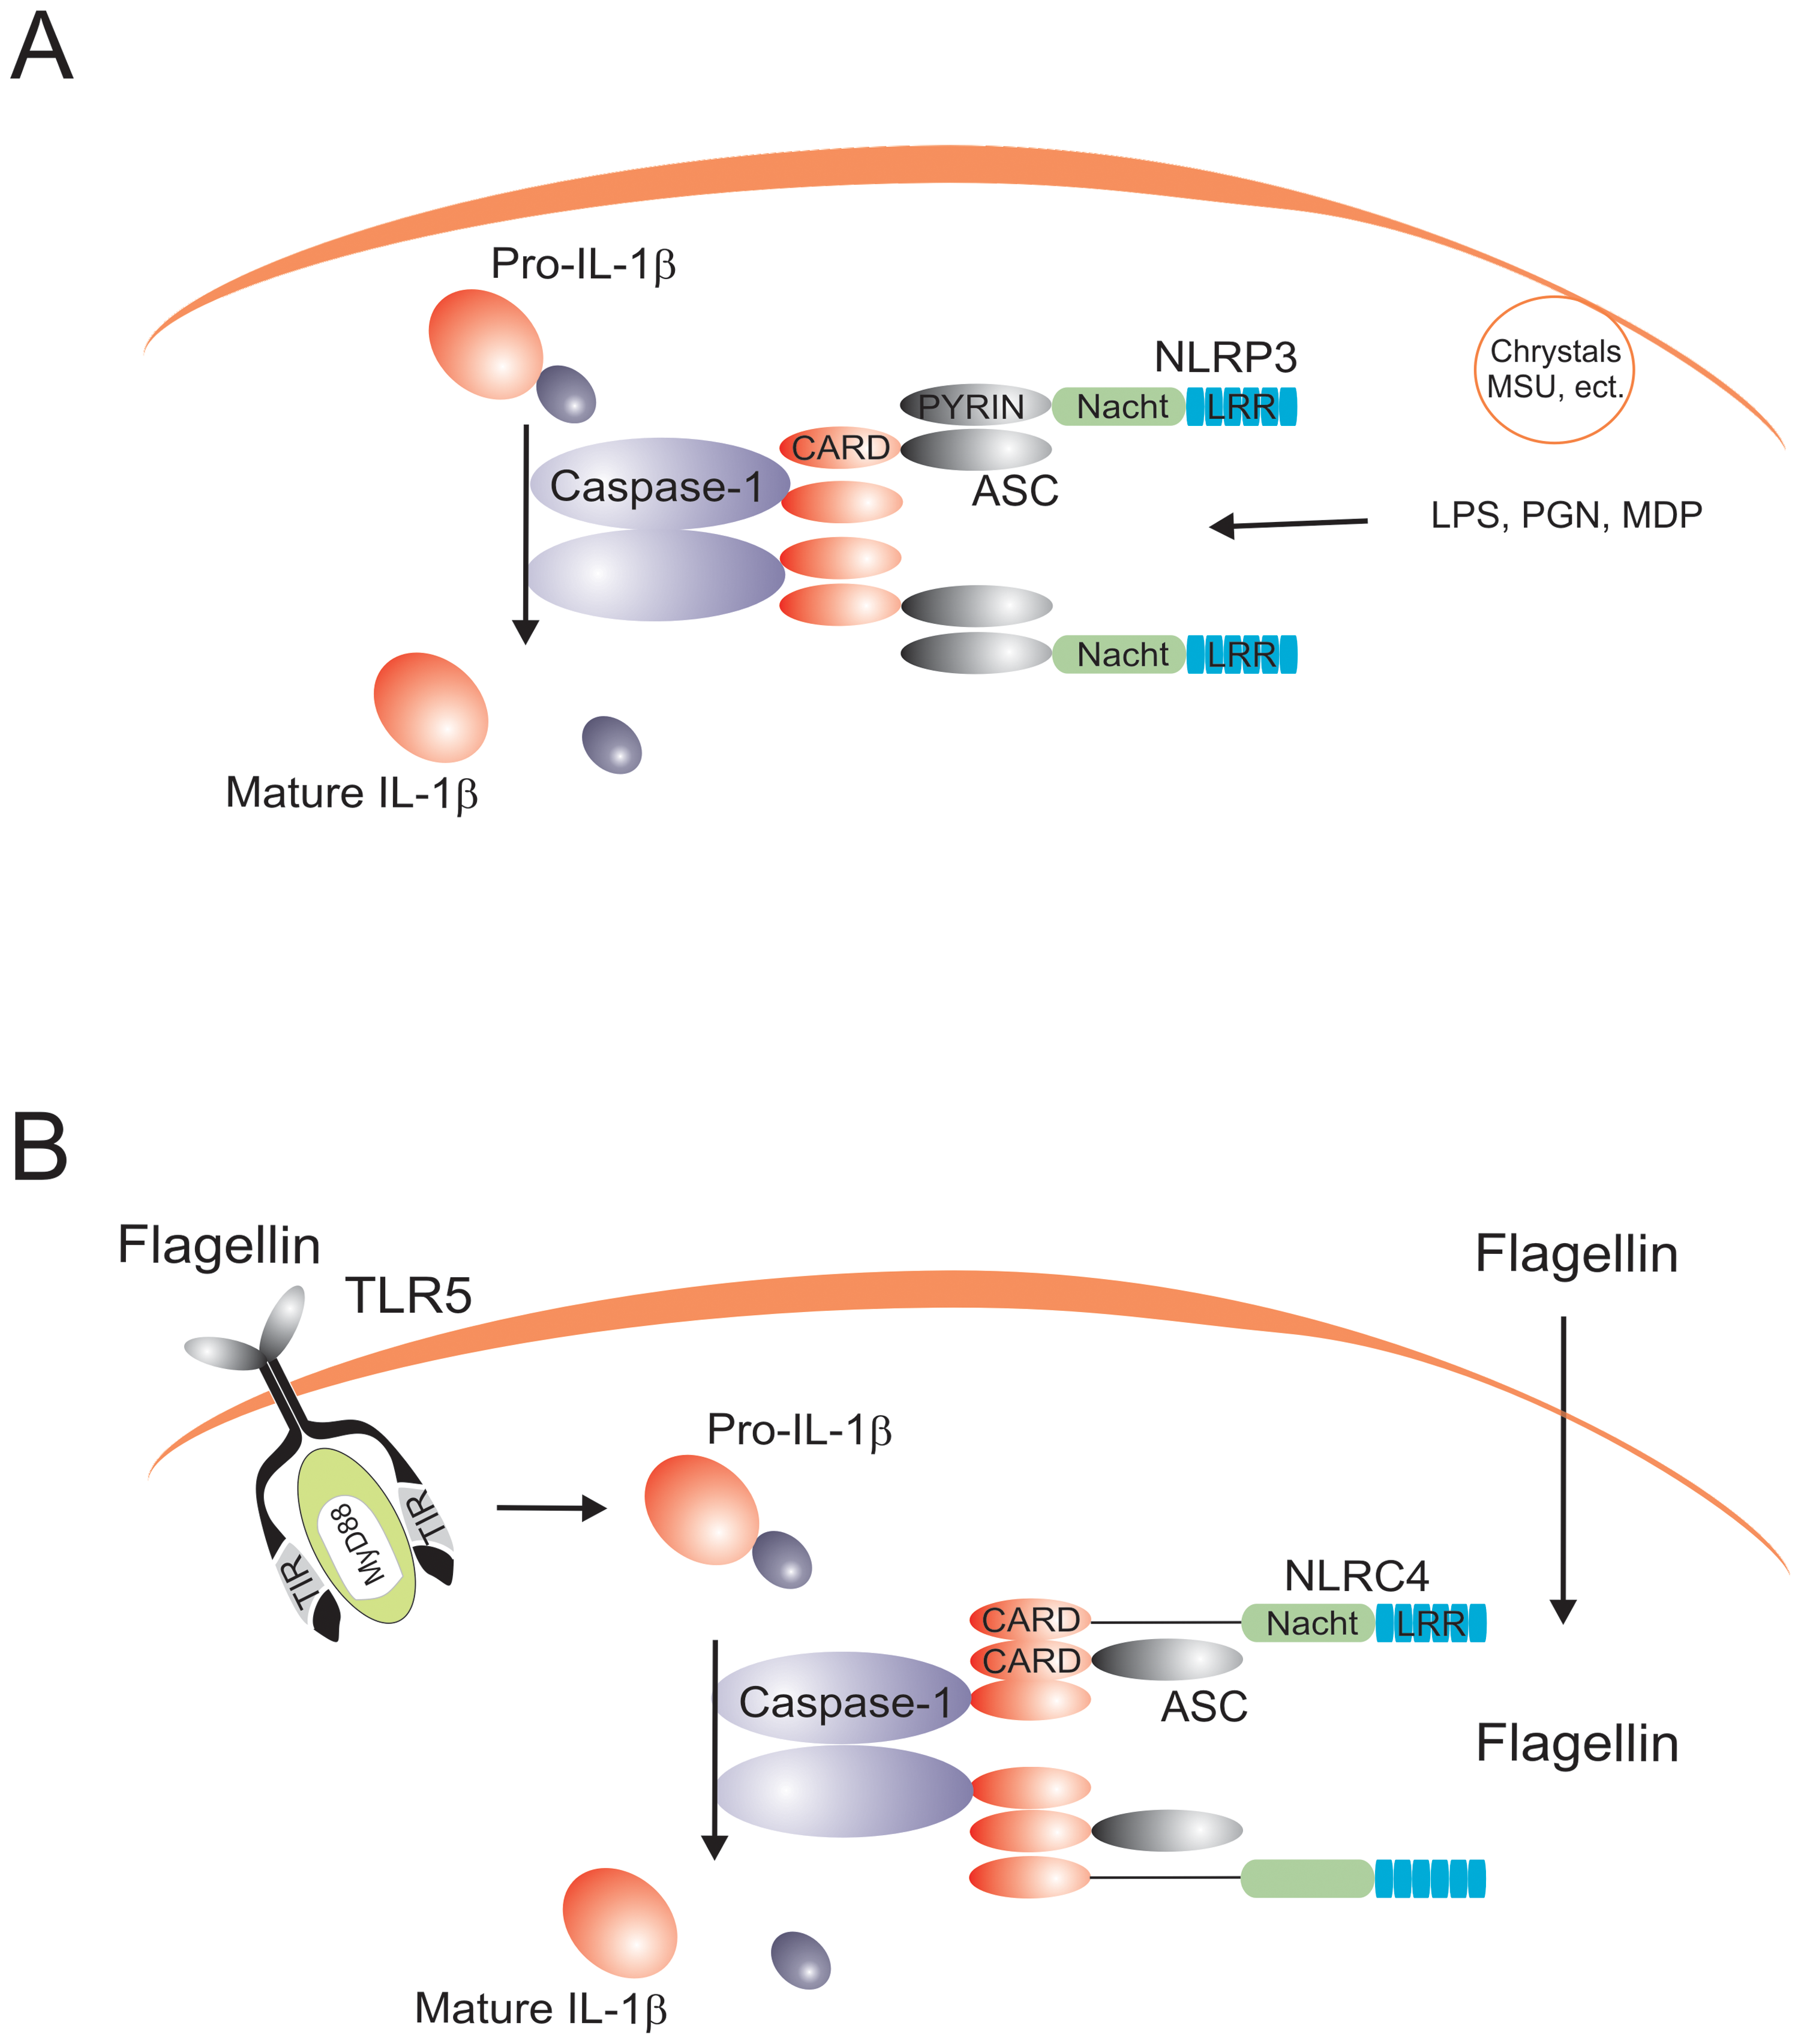 The prototypical NLRP3 and NLRC4 inflammasomes.